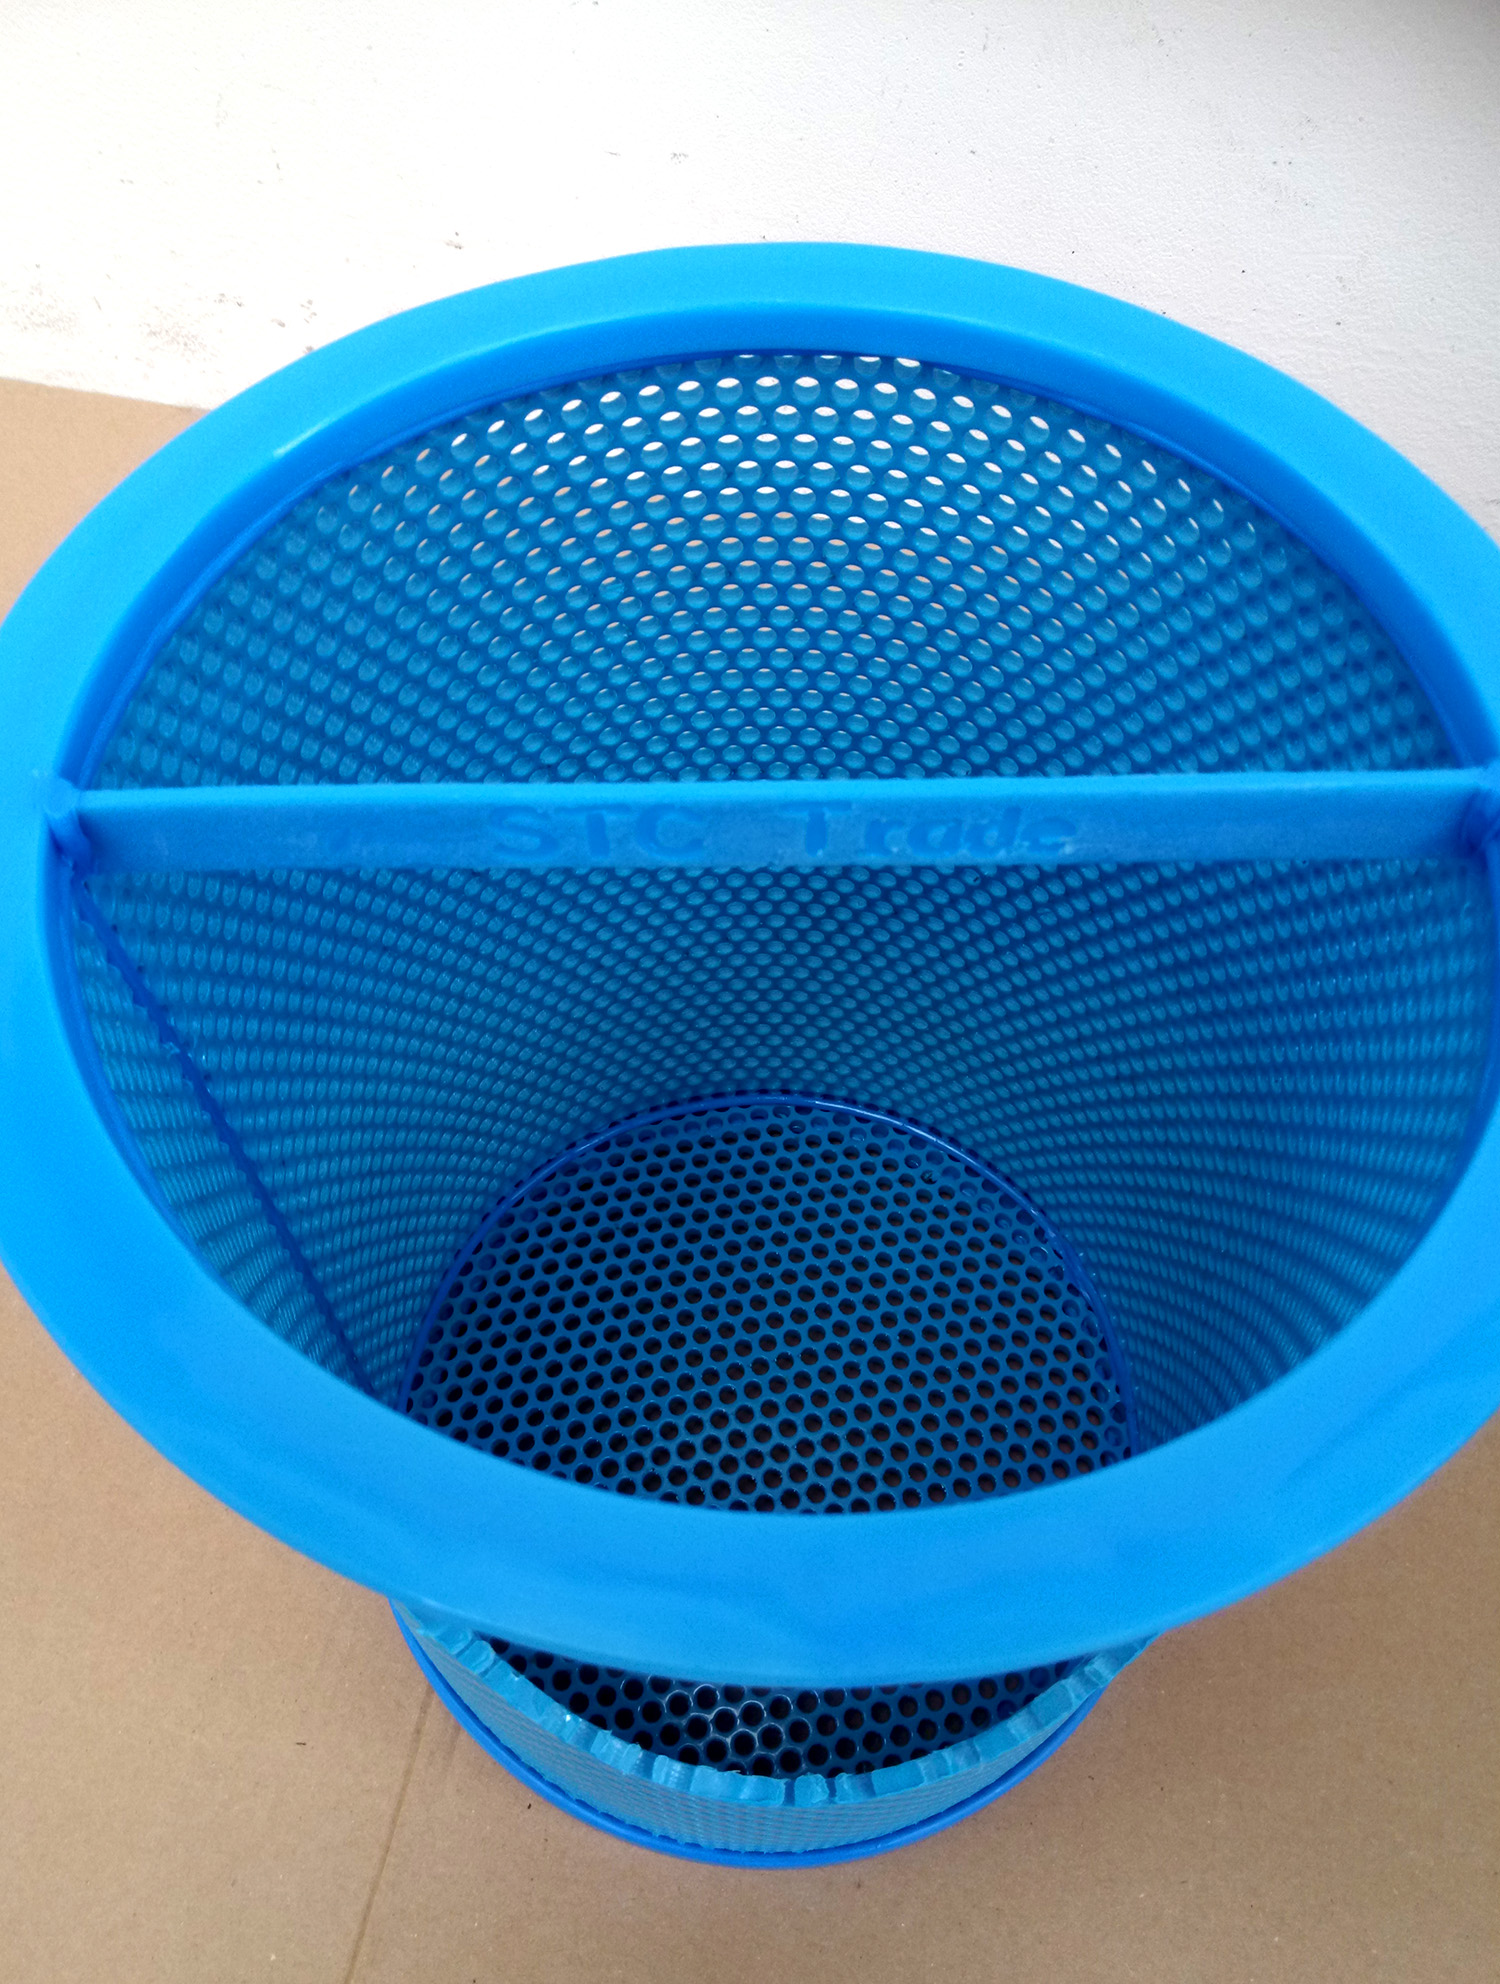 STC TRADE - sustainable filters in blue for ship